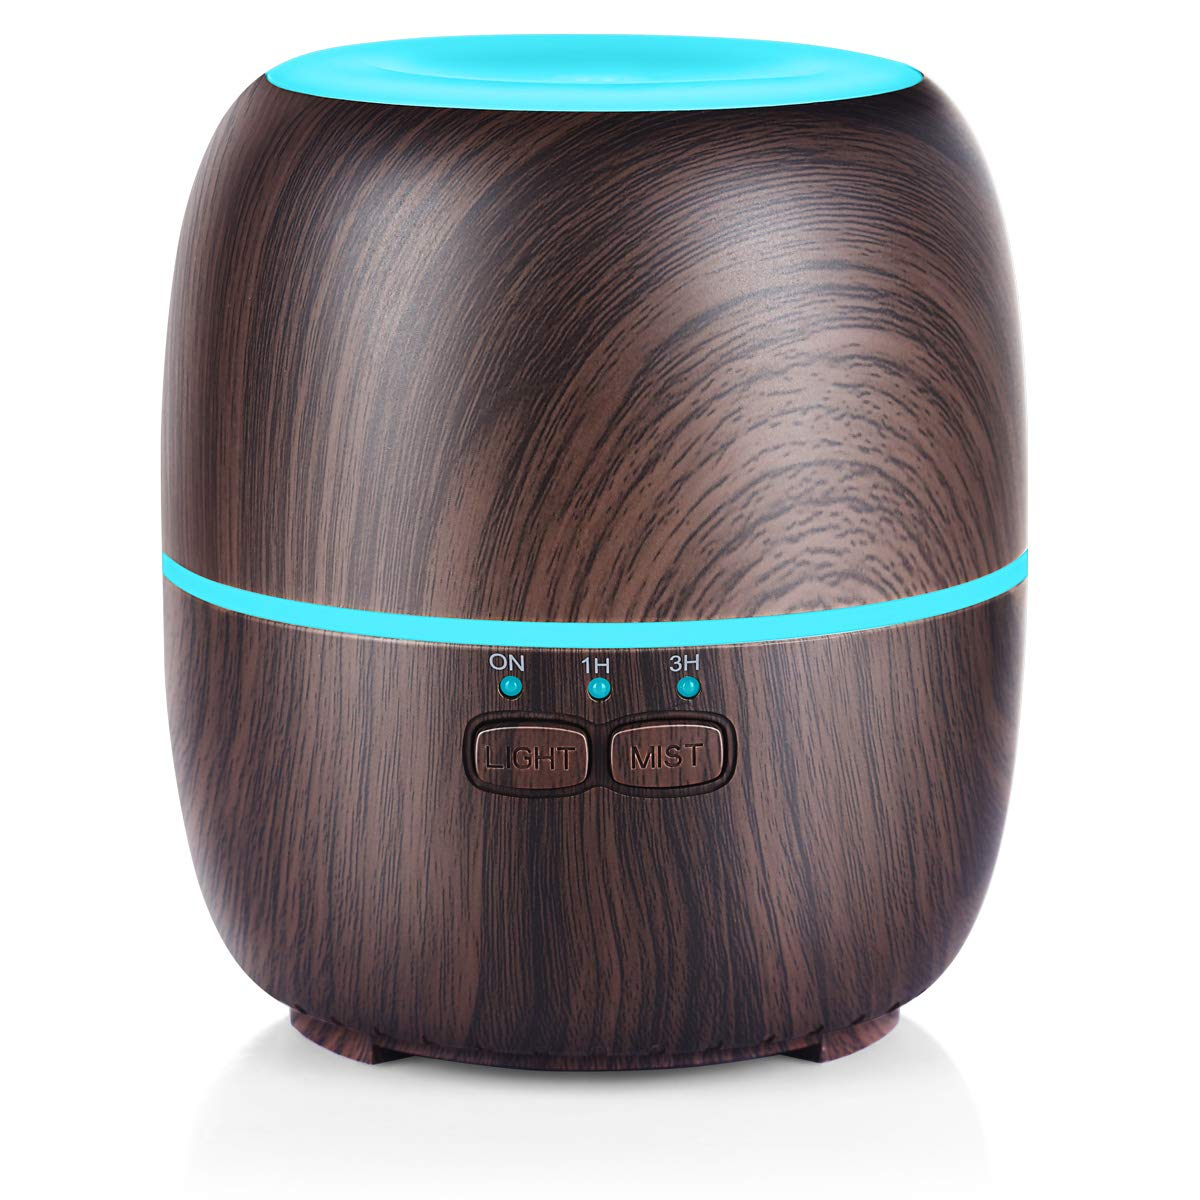 URPOWER Essential Oil Diffuser, 230ml Diffusers for Essential Oils Super Quiet Wood Grain Aromatherapy Oil Diffuser Essential Oils with Adjustable Mist Mode, 7 Color LED Lights for Home Yoga Office by URPOWER